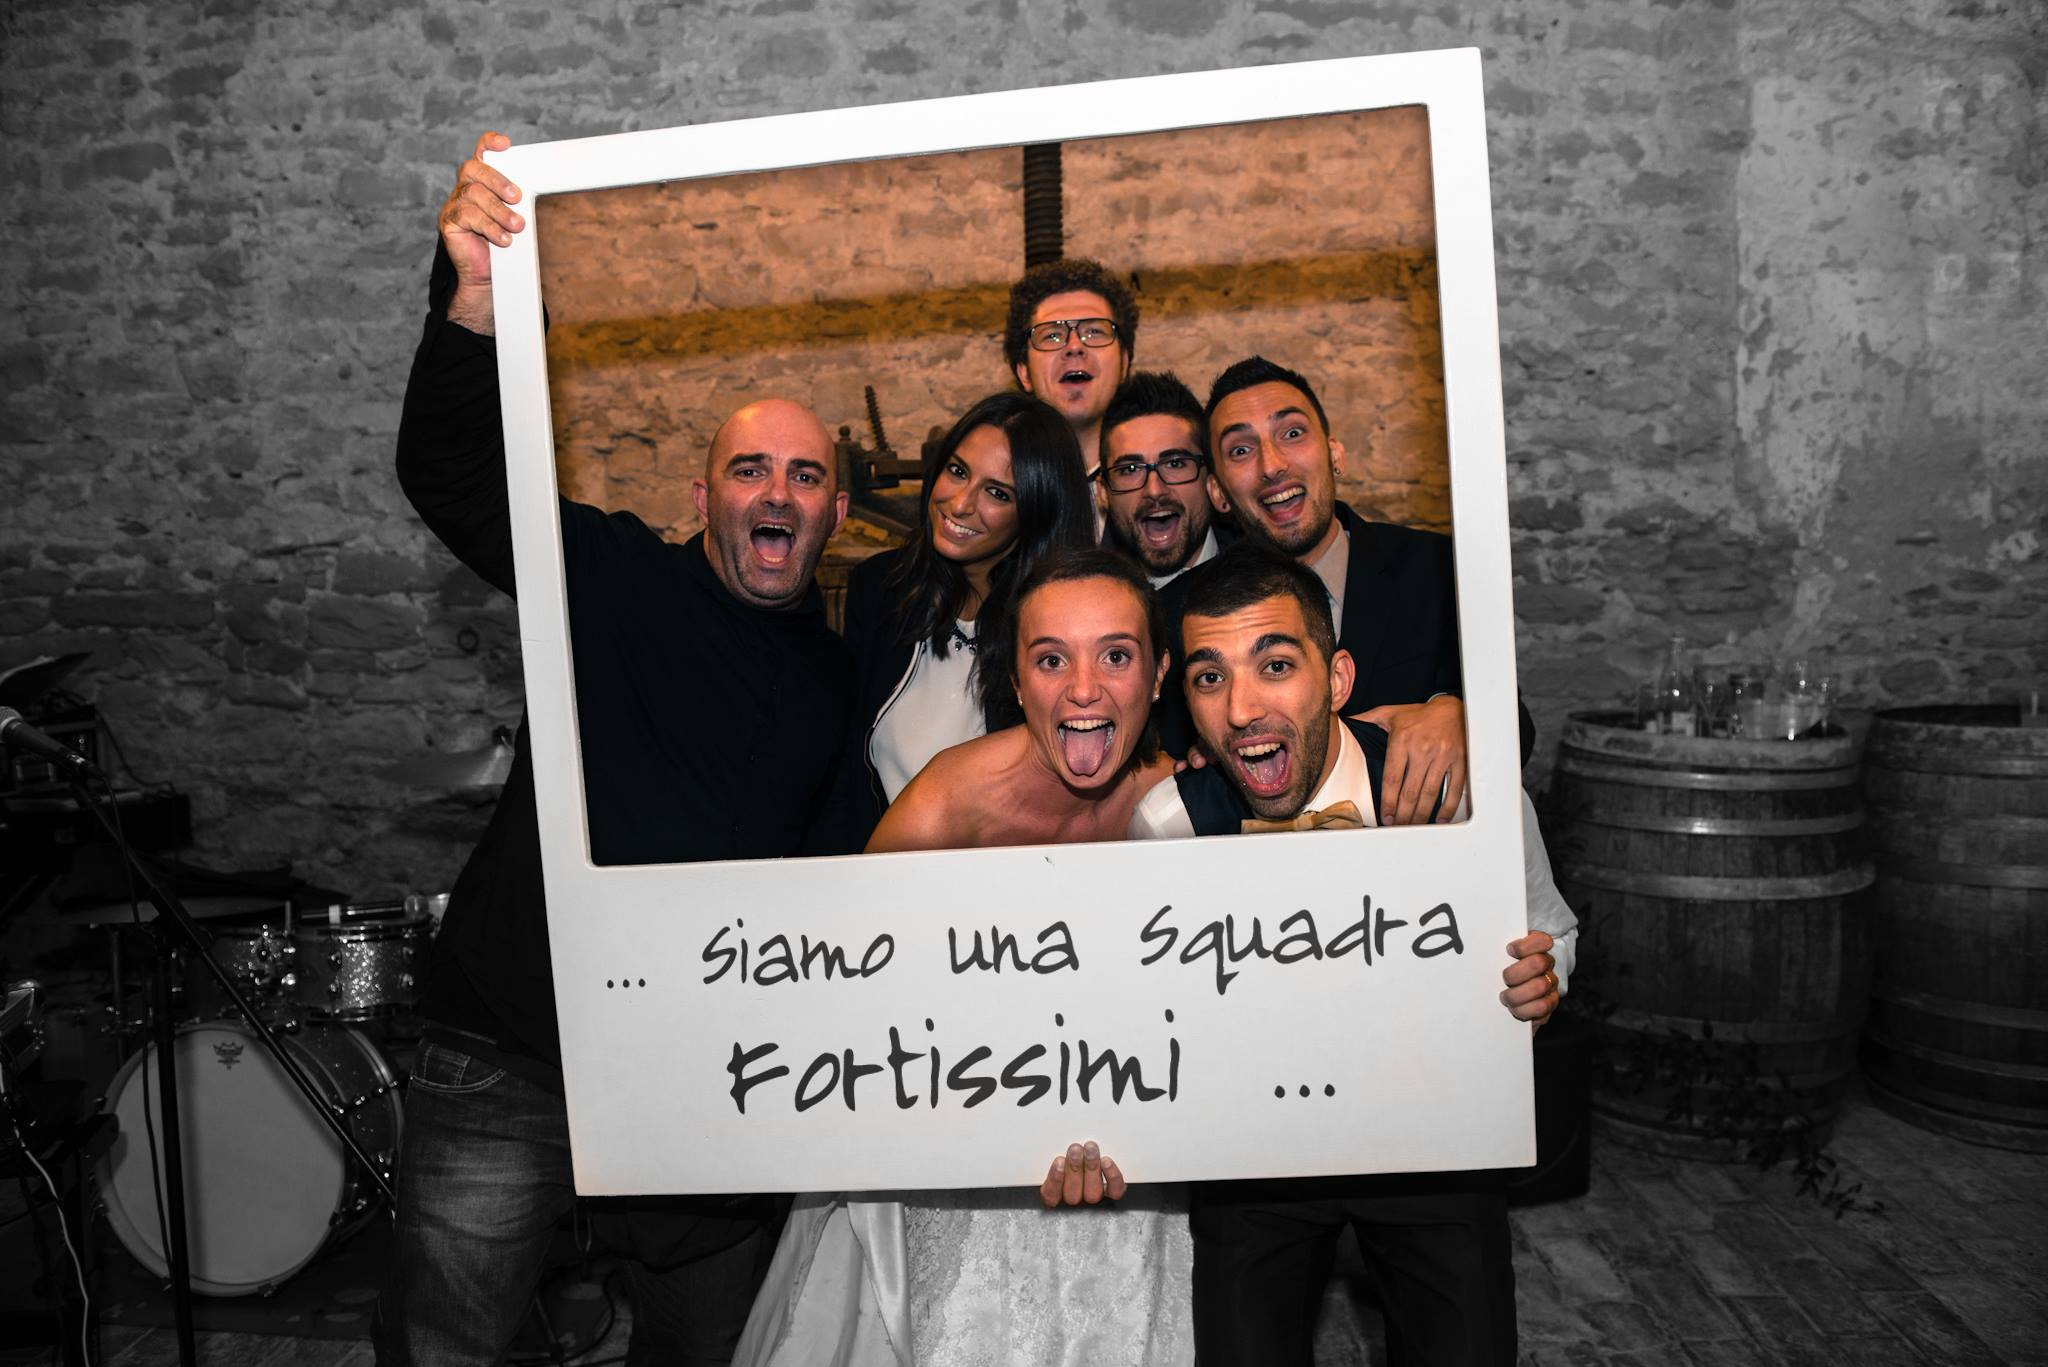 https://lnx.mirkone.it/wp-content/uploads/2018/03/mirk_ONE-fotografo-matrimonio-00854.jpg